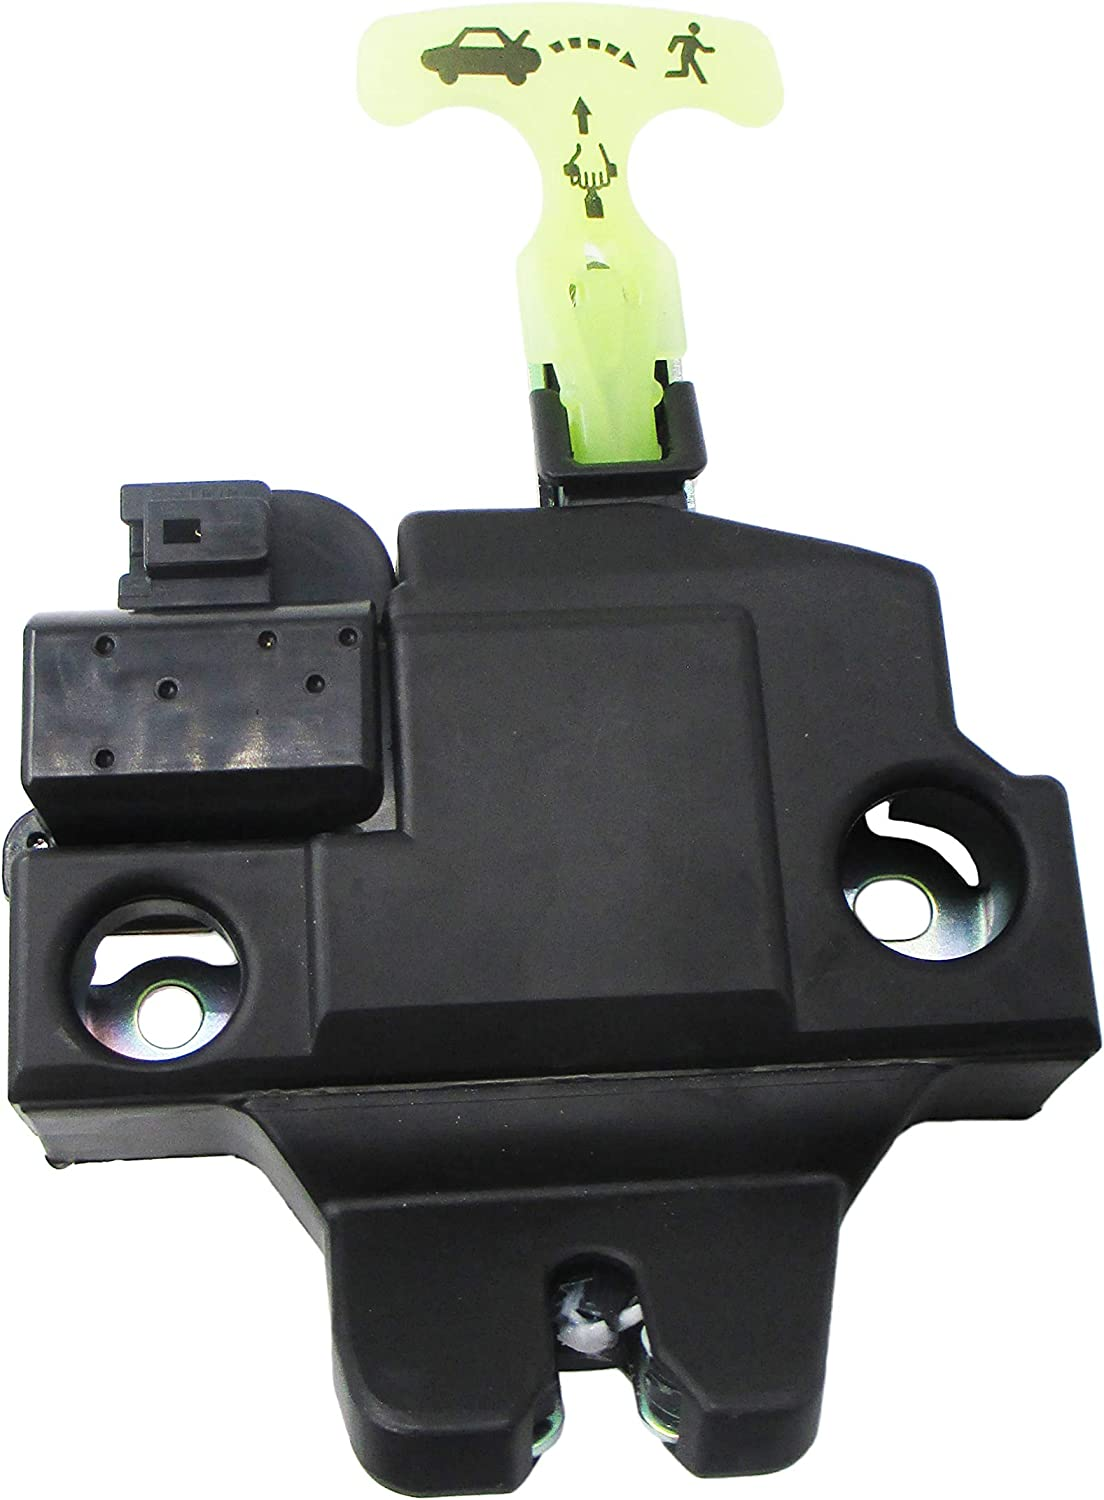 Trunk Lid Latch Lock Actuator Fit For 2007-2011 Toyota Camry 64600-06010 Latest